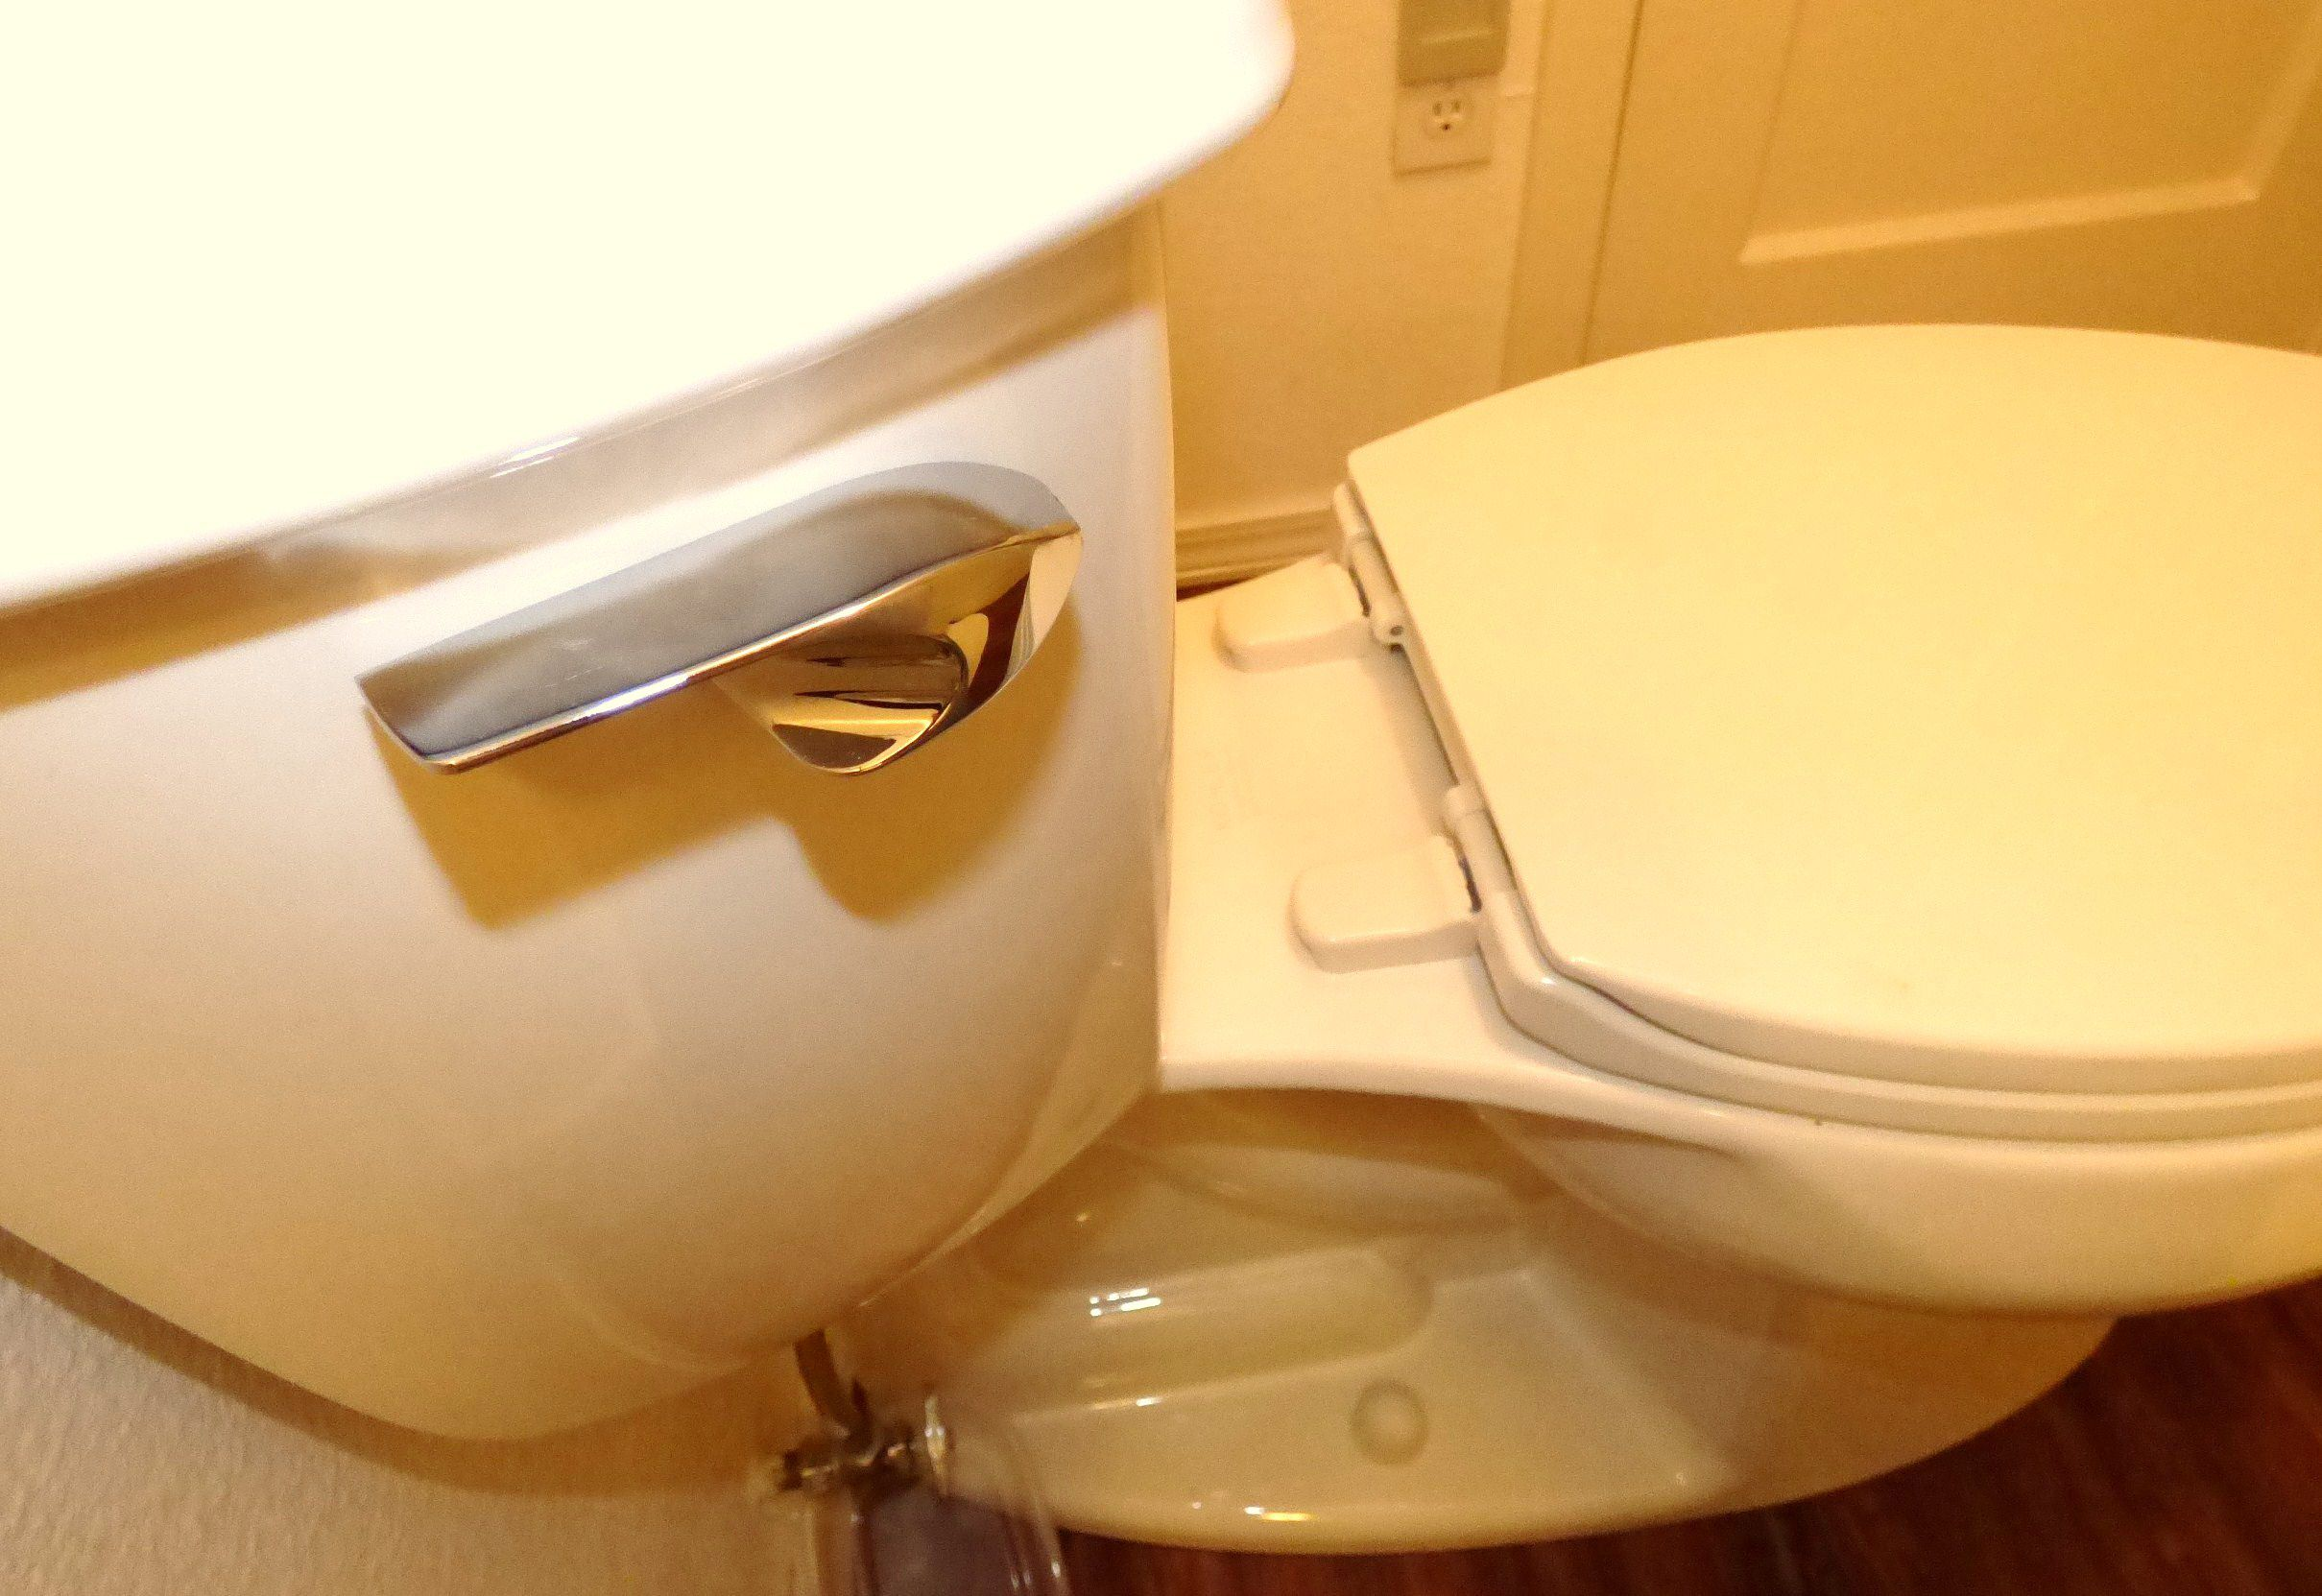 10 Features to Avoid When Buying a New Toilet